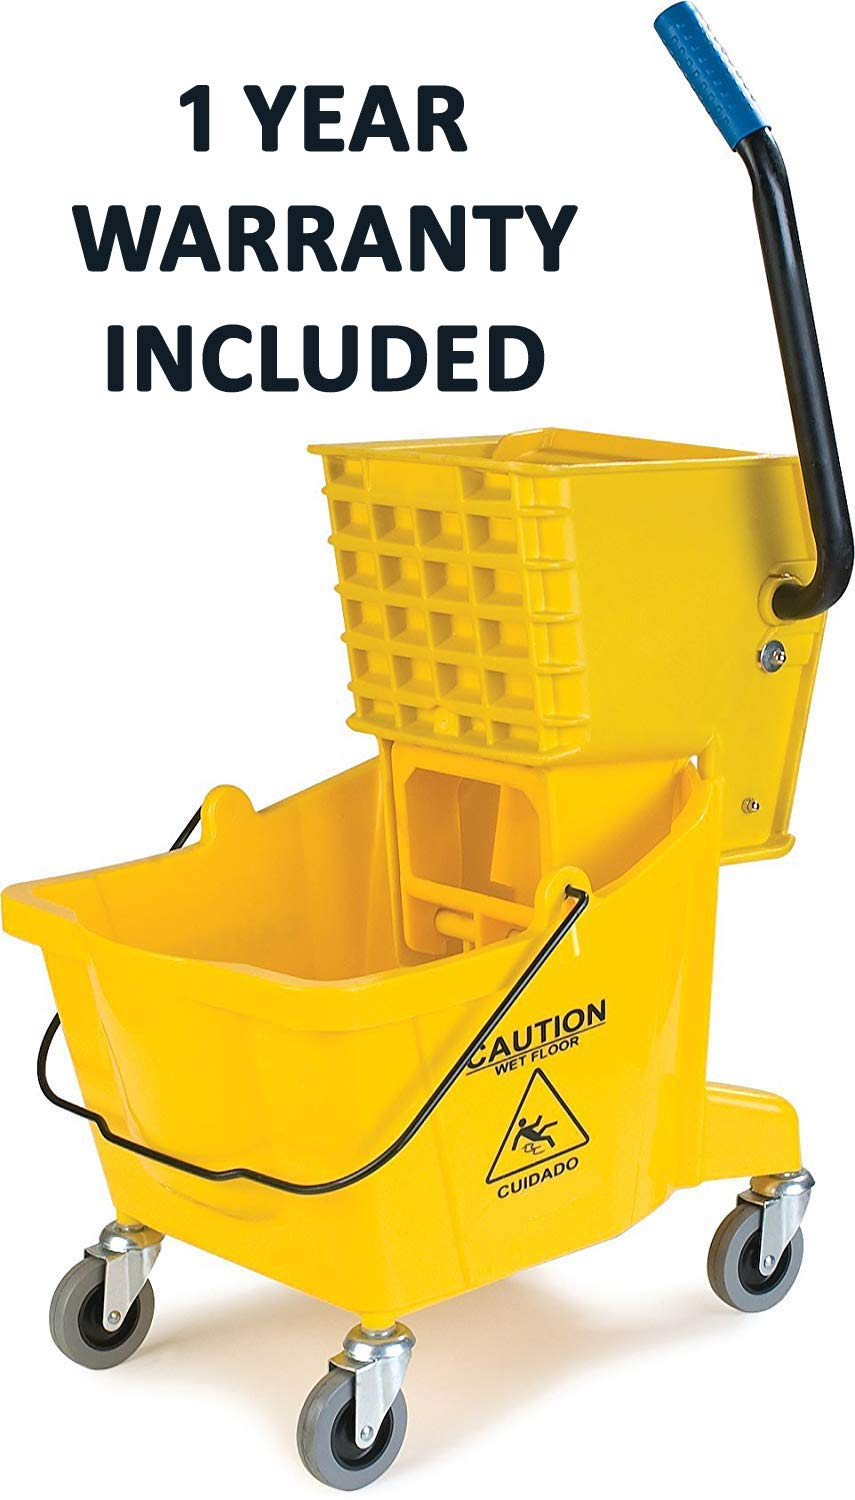 Simpli-Magic 79139 Commercial Mop Bucket with Side Press Wringer, Industrial